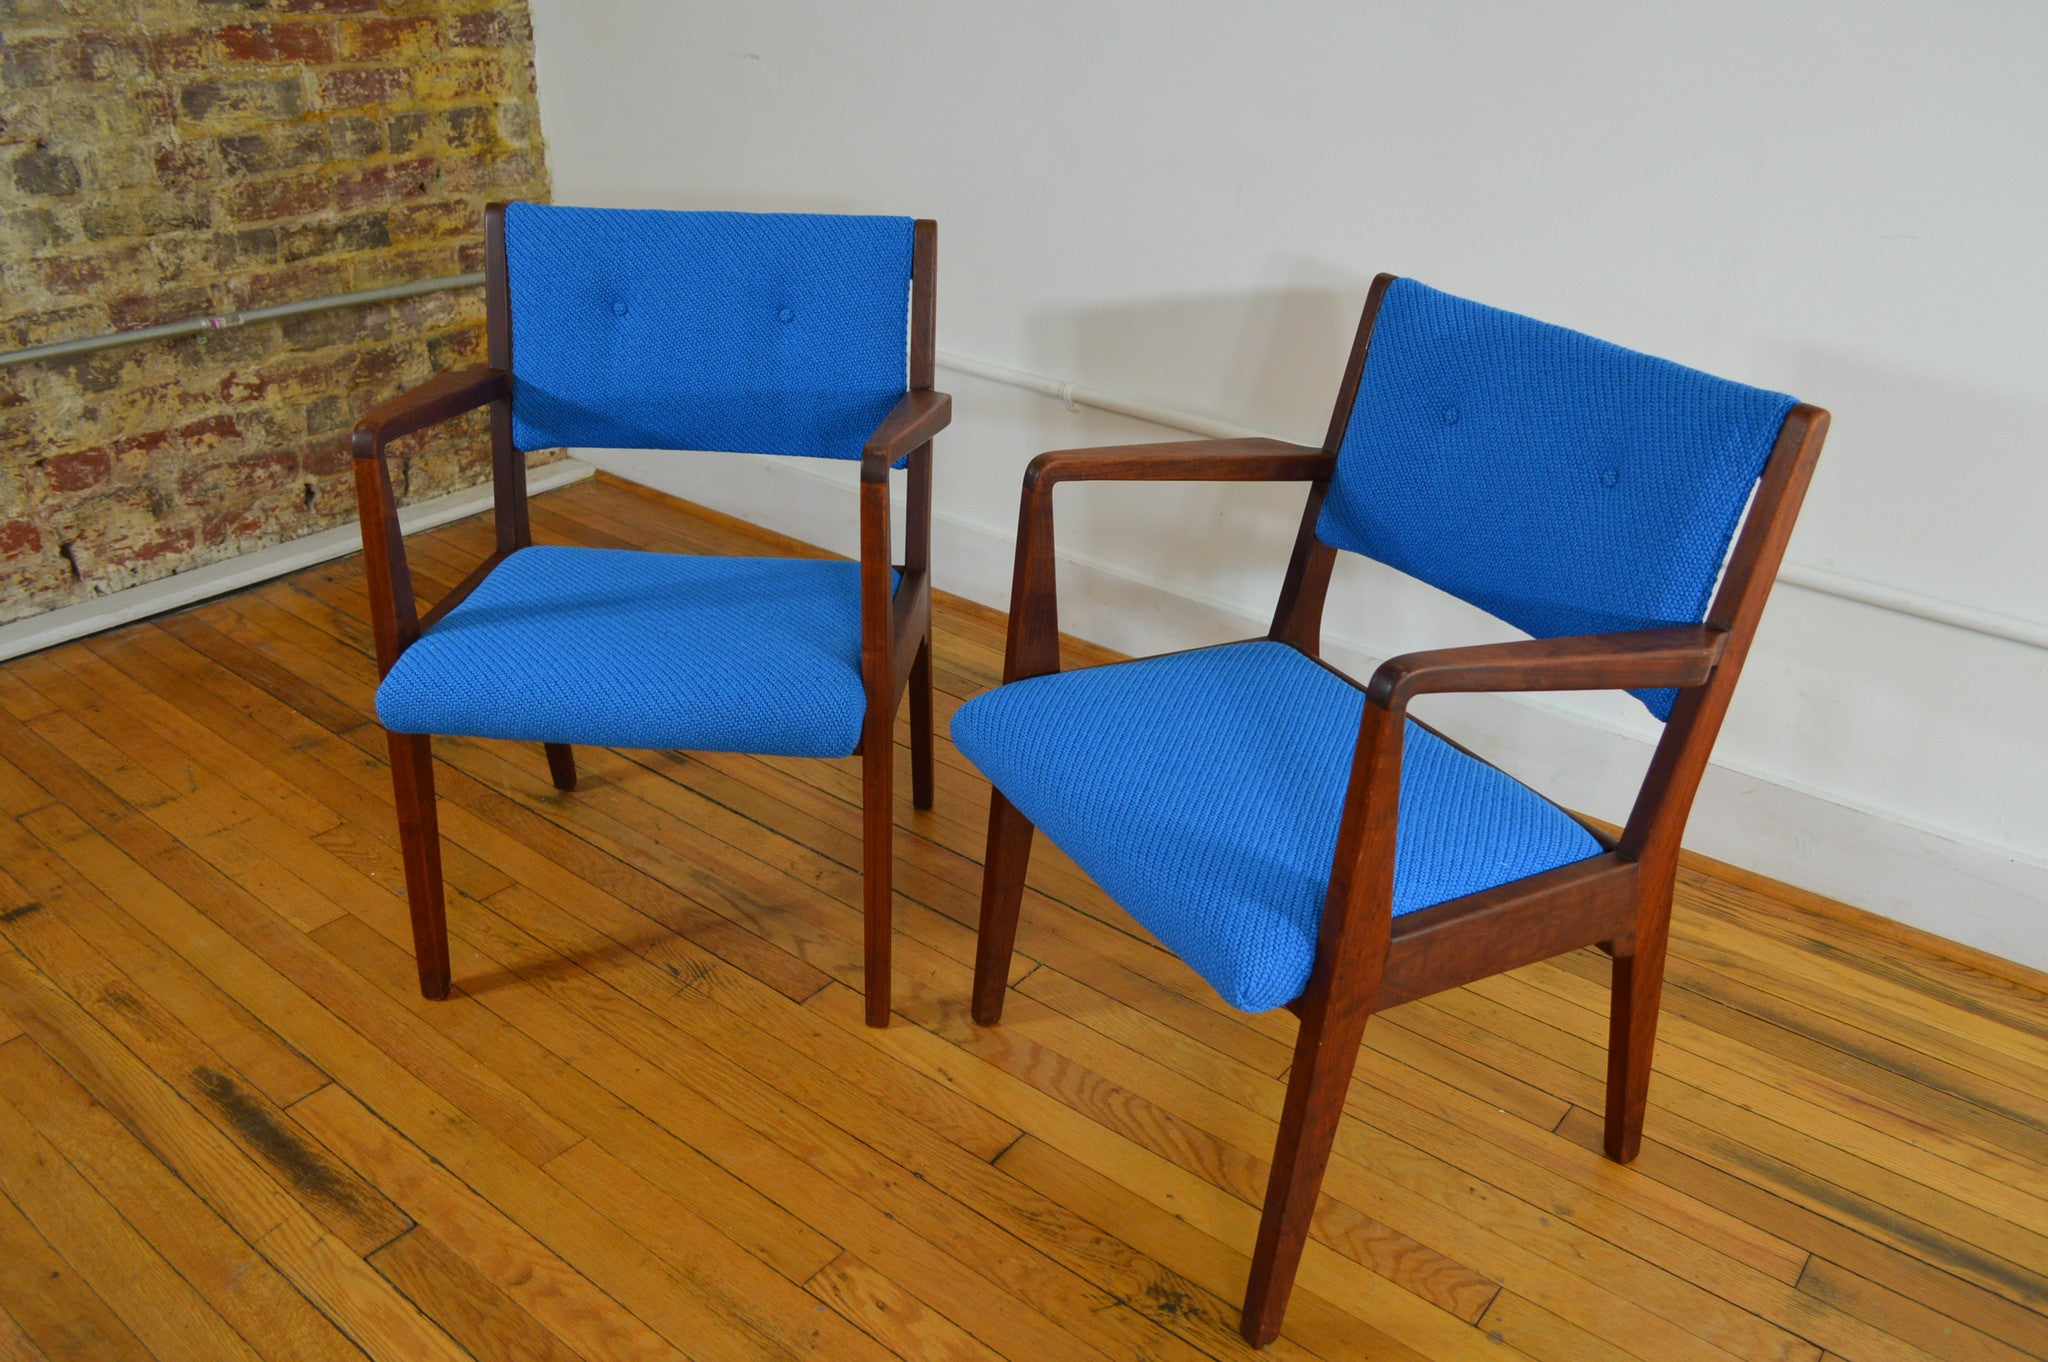 Jens Risom Walnut Arm Chairs In Electric Blue Maharam Kvadrat Wool